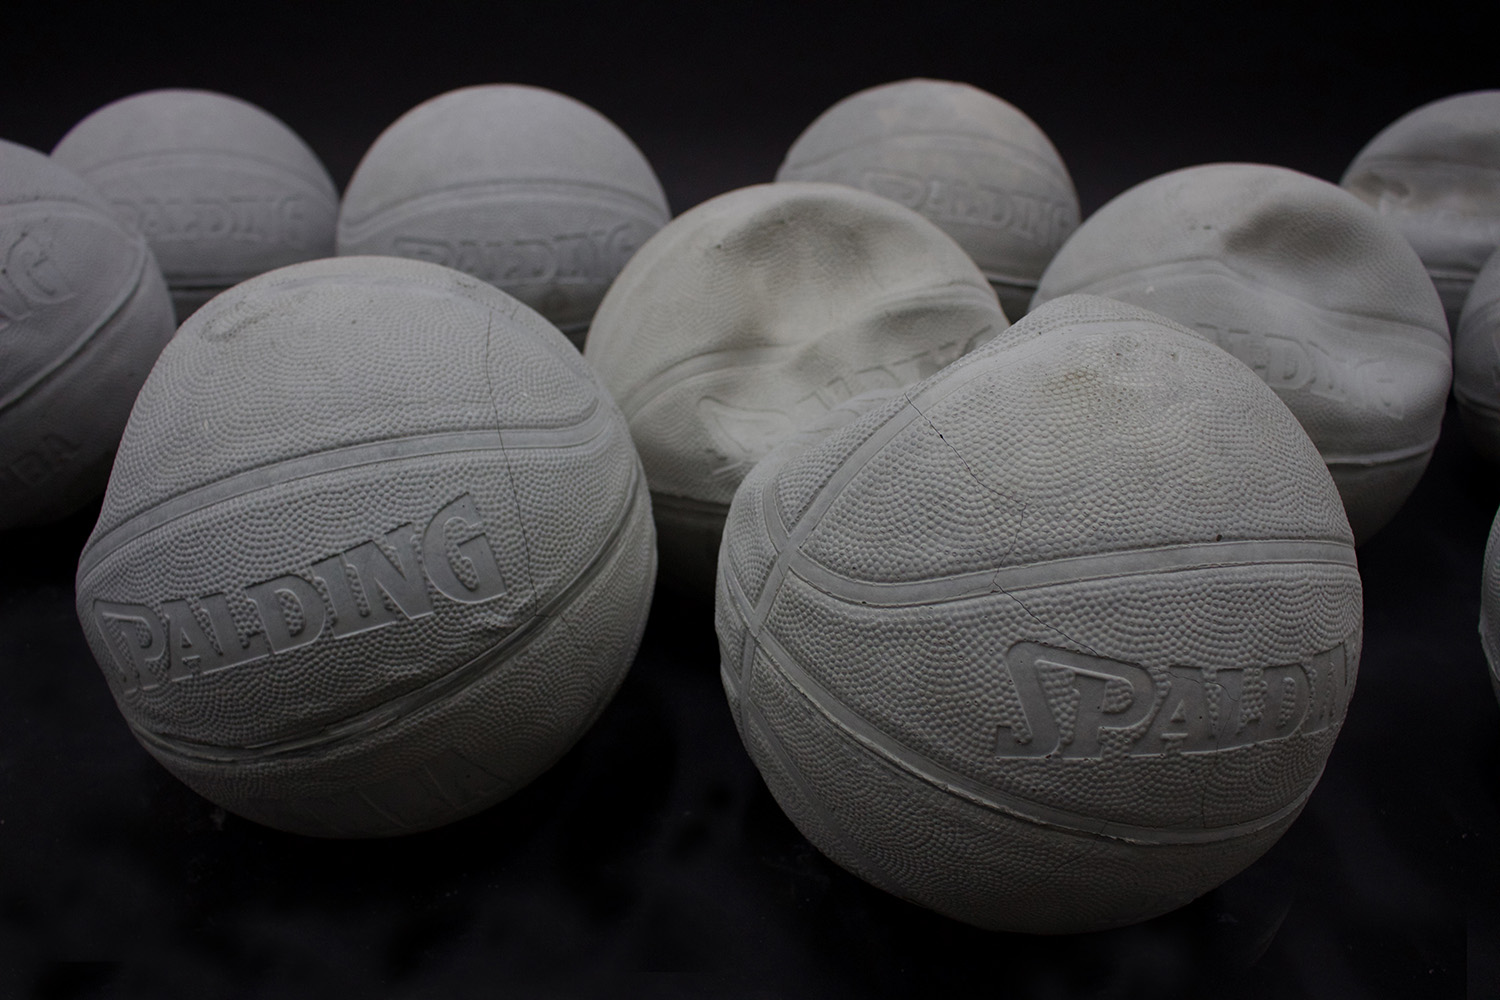 Heavy, Heavy (Hoop Dreams), Detailed view , 2016-17, 60 solid concrete basketballs, 30lbs each, 10x10ft. Image courtesy the Art Gallery of Ontario